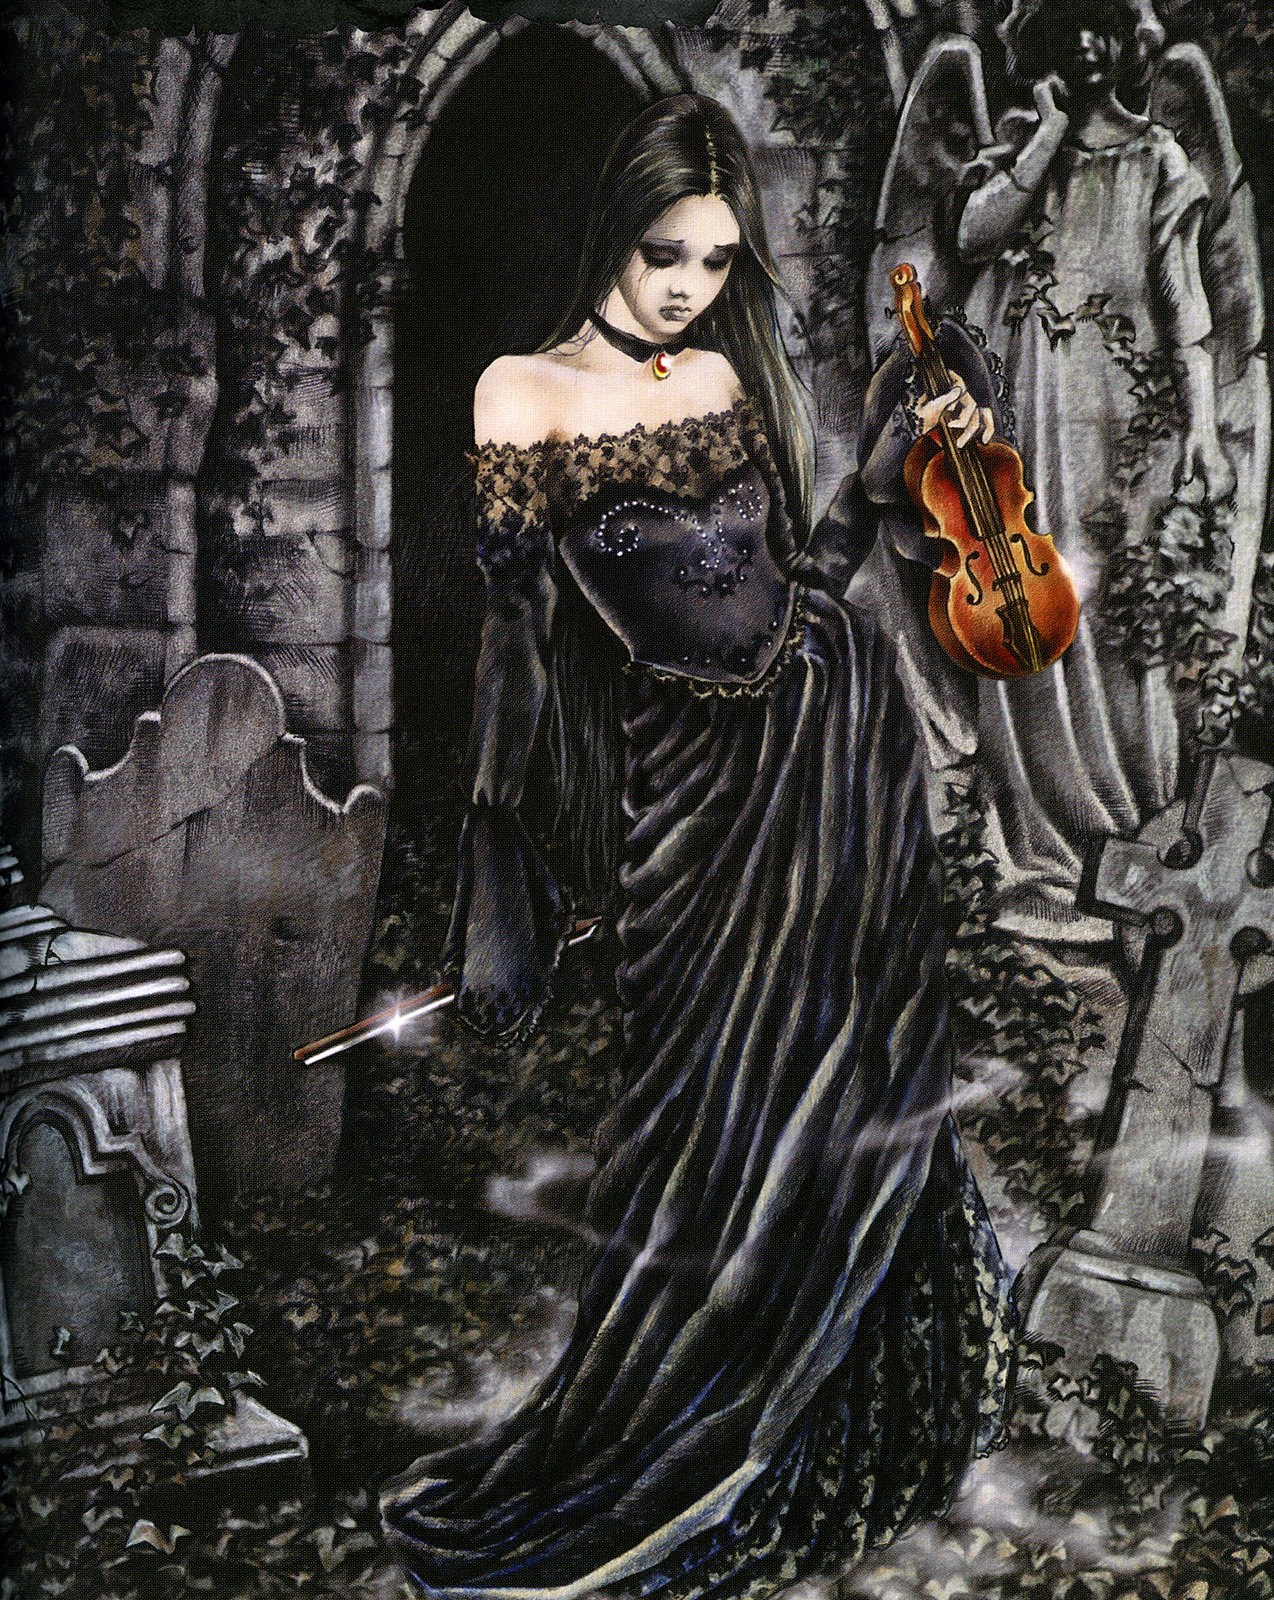 1000 images about victoria francis on pinterest gothic art vampire art and gary oldman. Black Bedroom Furniture Sets. Home Design Ideas